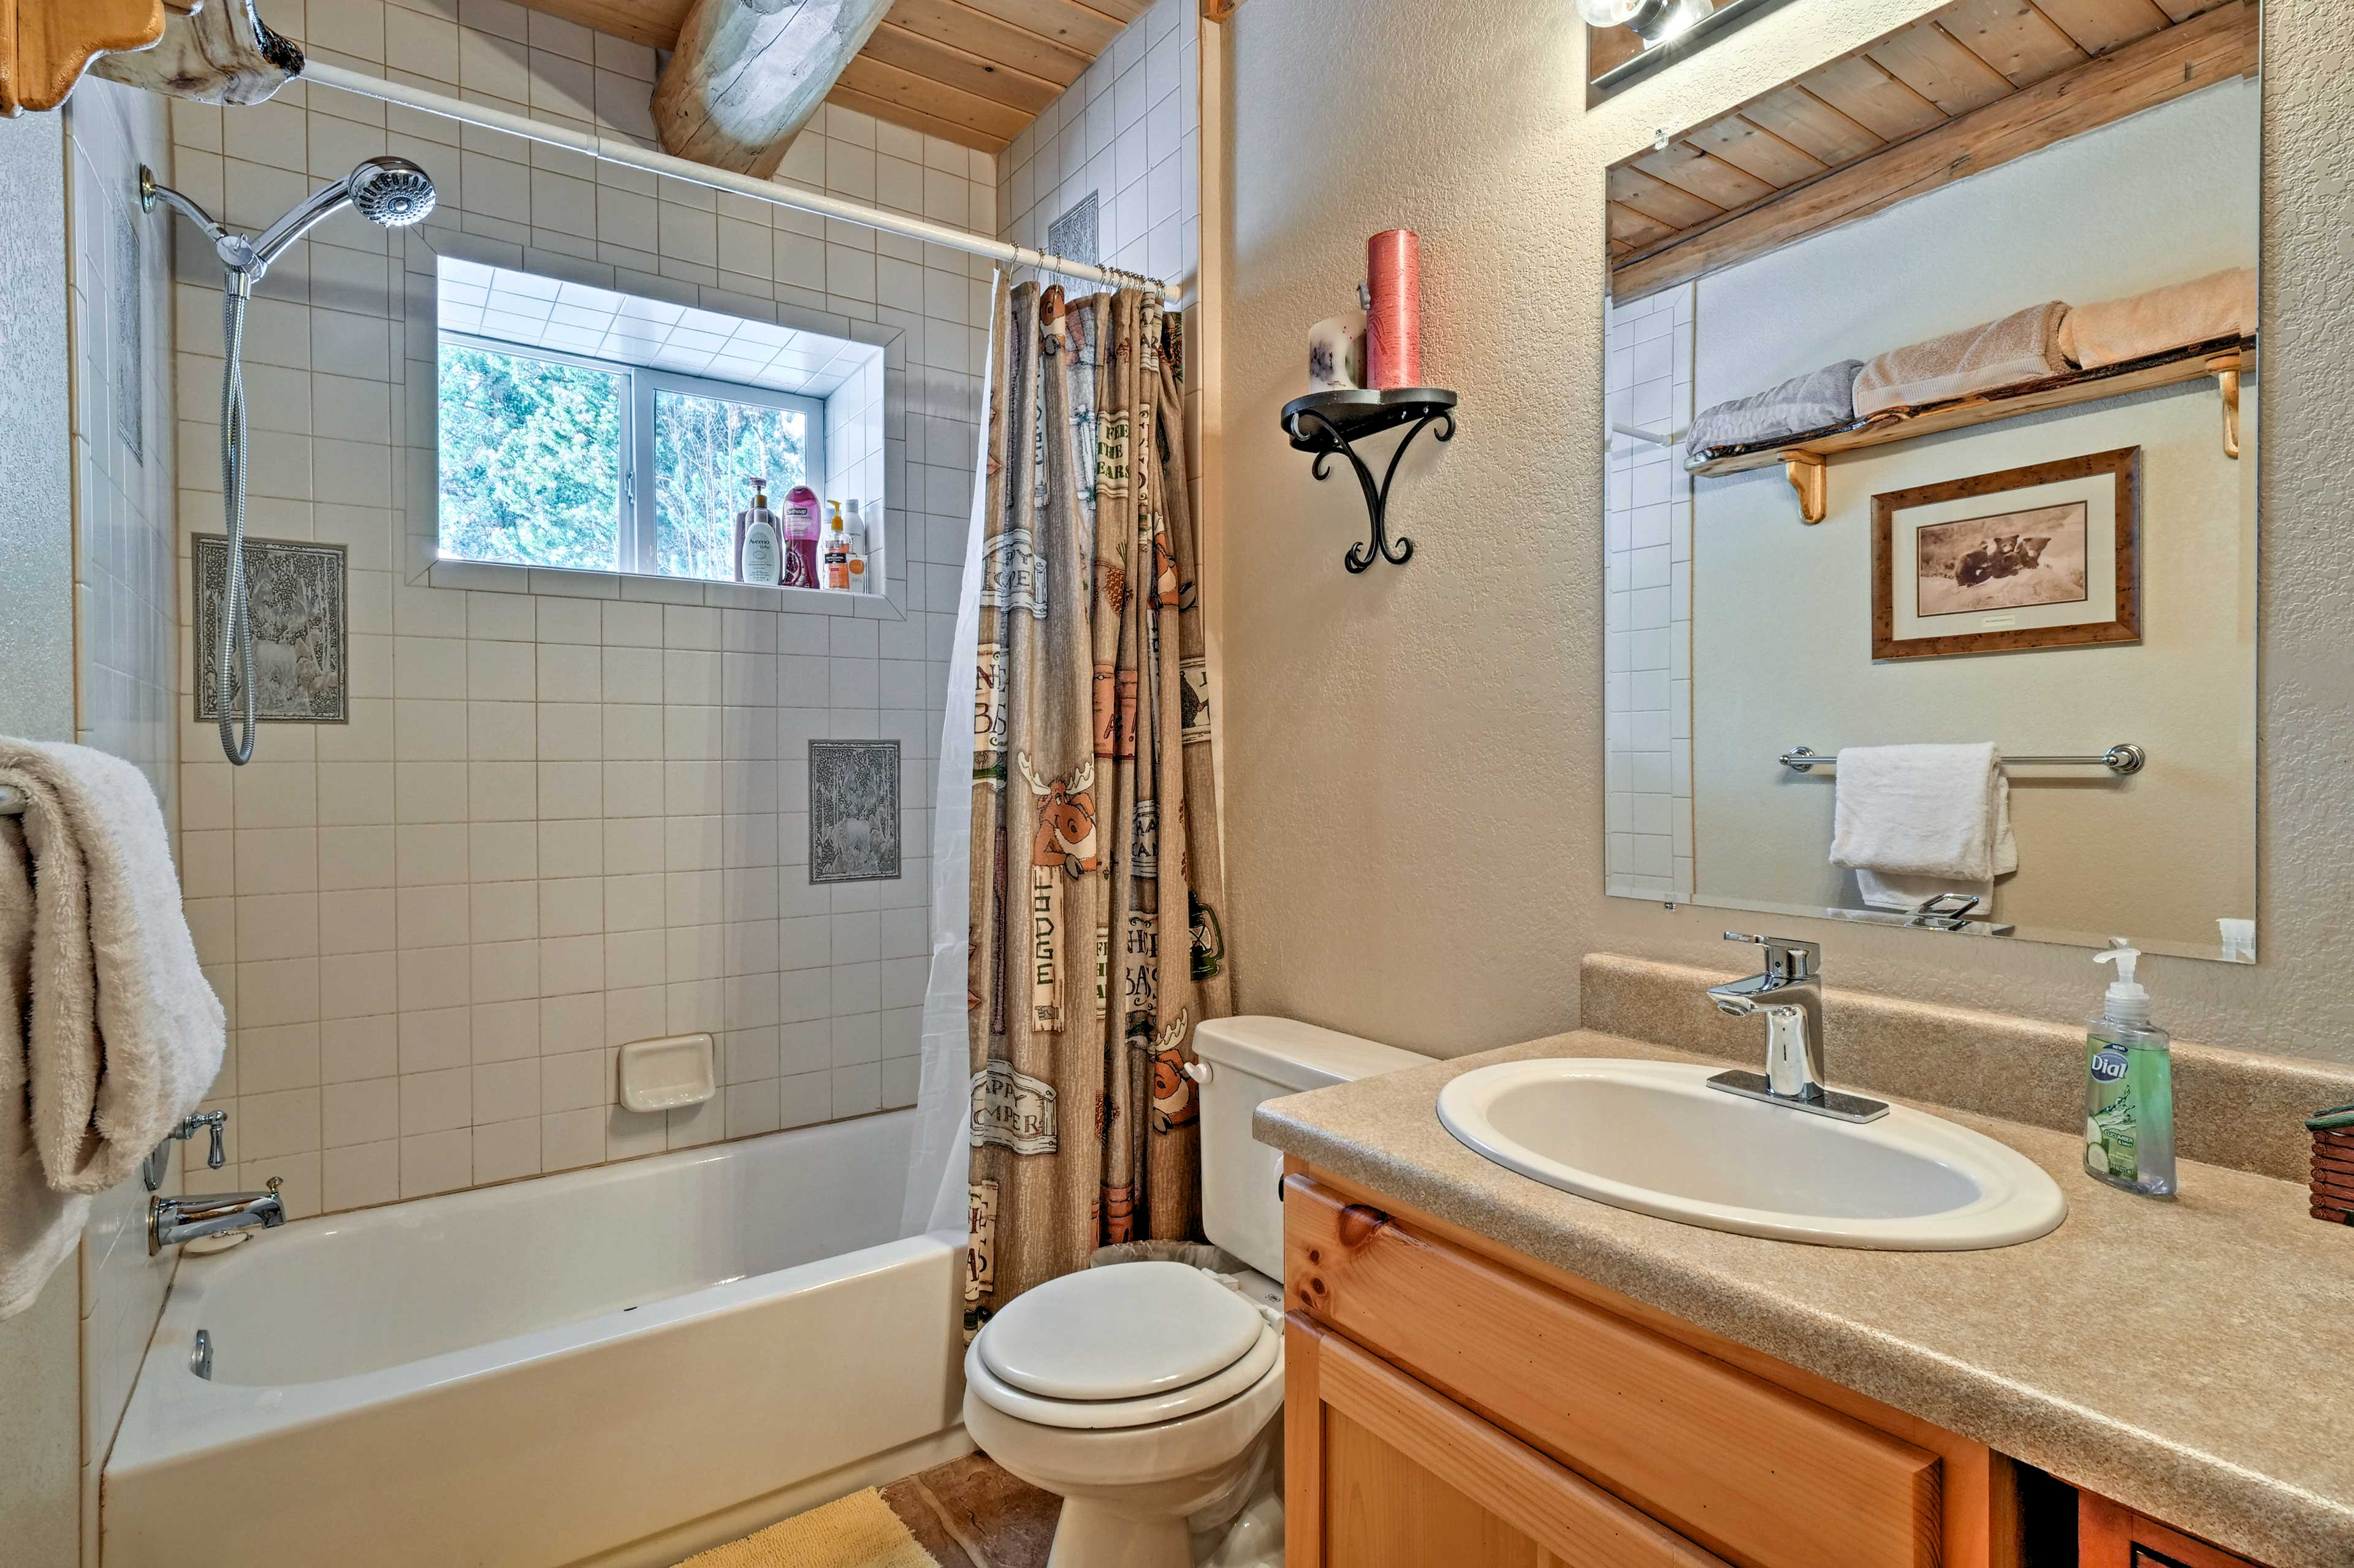 The first bathroom is equipped with a single vanity and shower/tub combo.